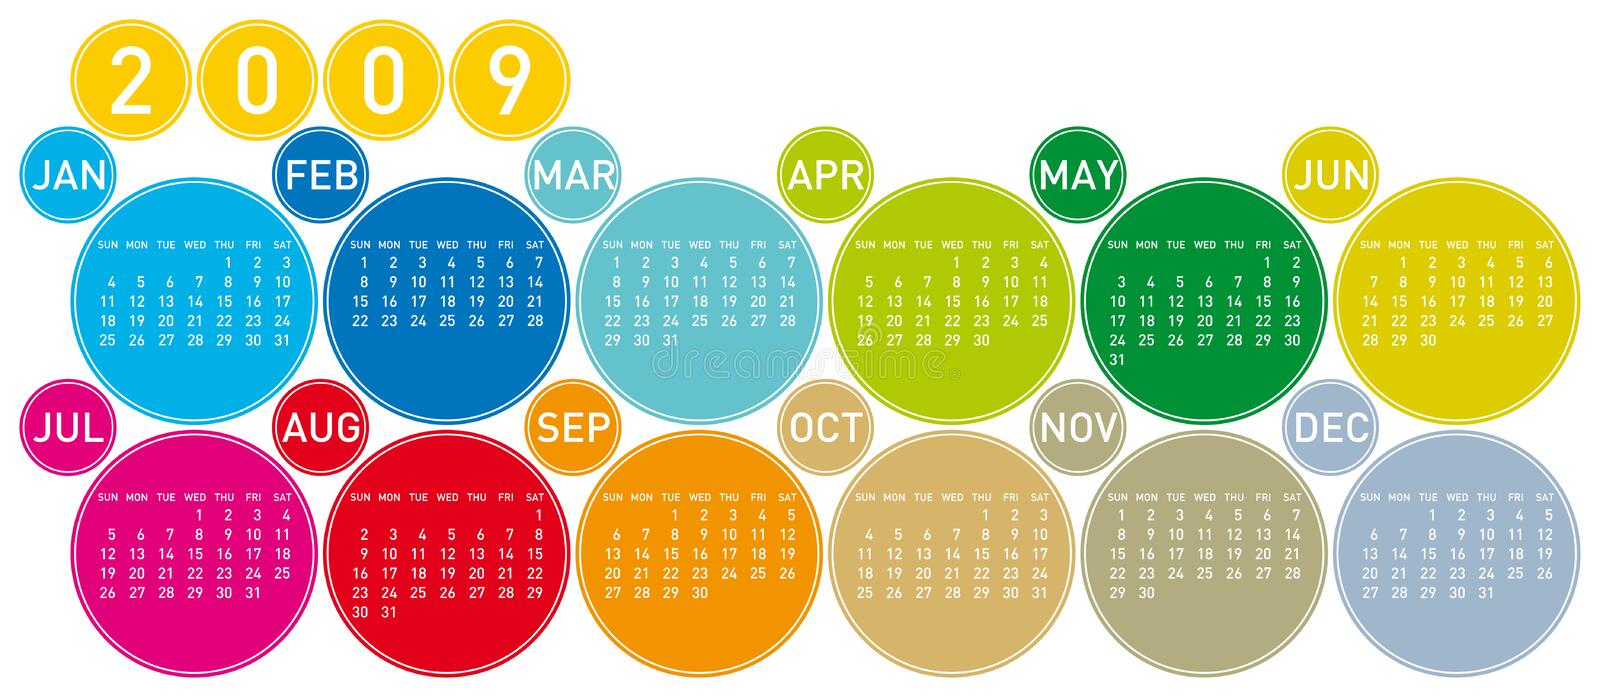 Colorful Calendar for 2009 royalty free stock images